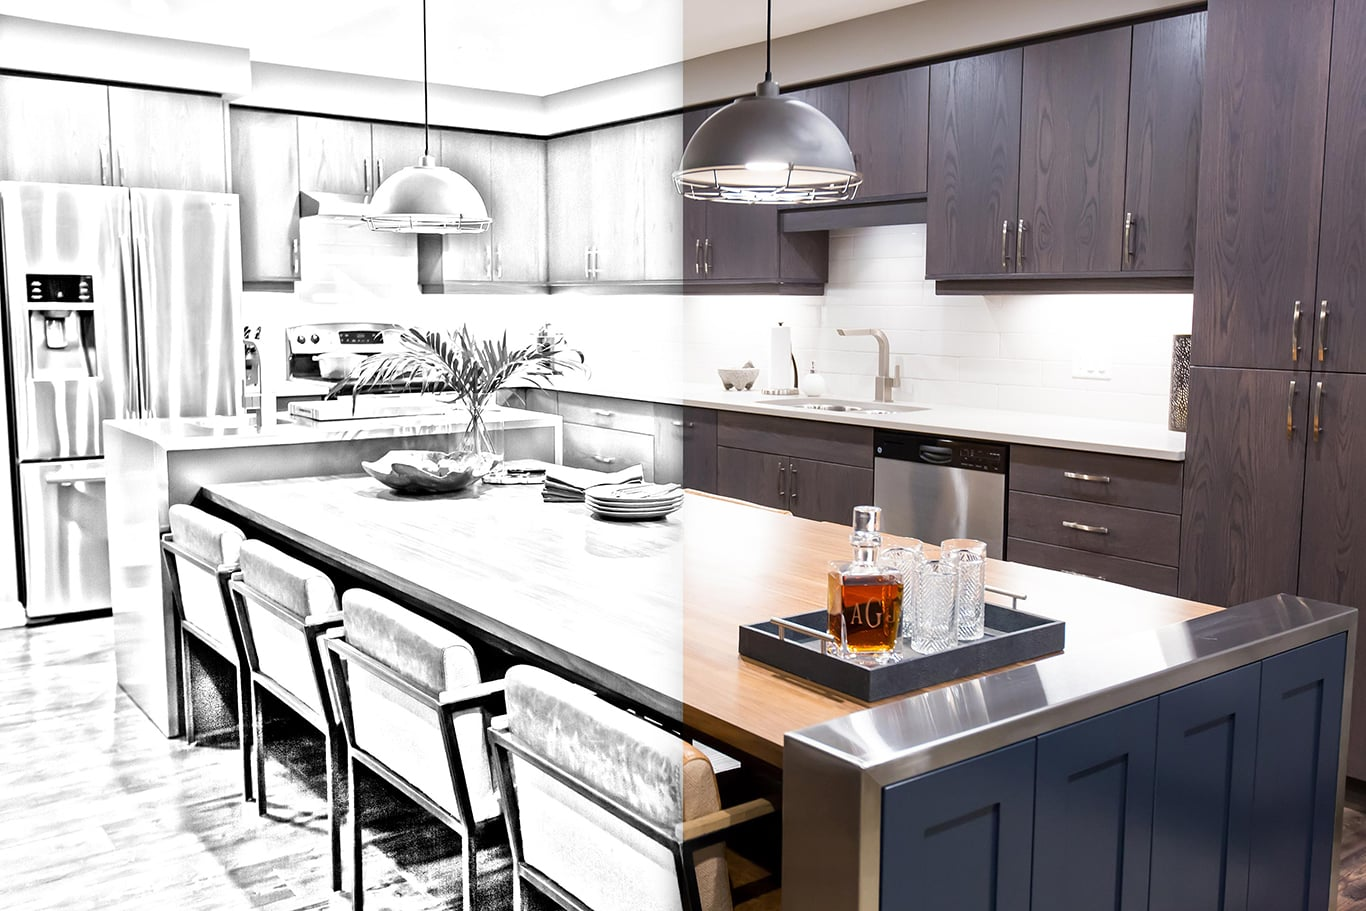 Home renovation - From design to completion